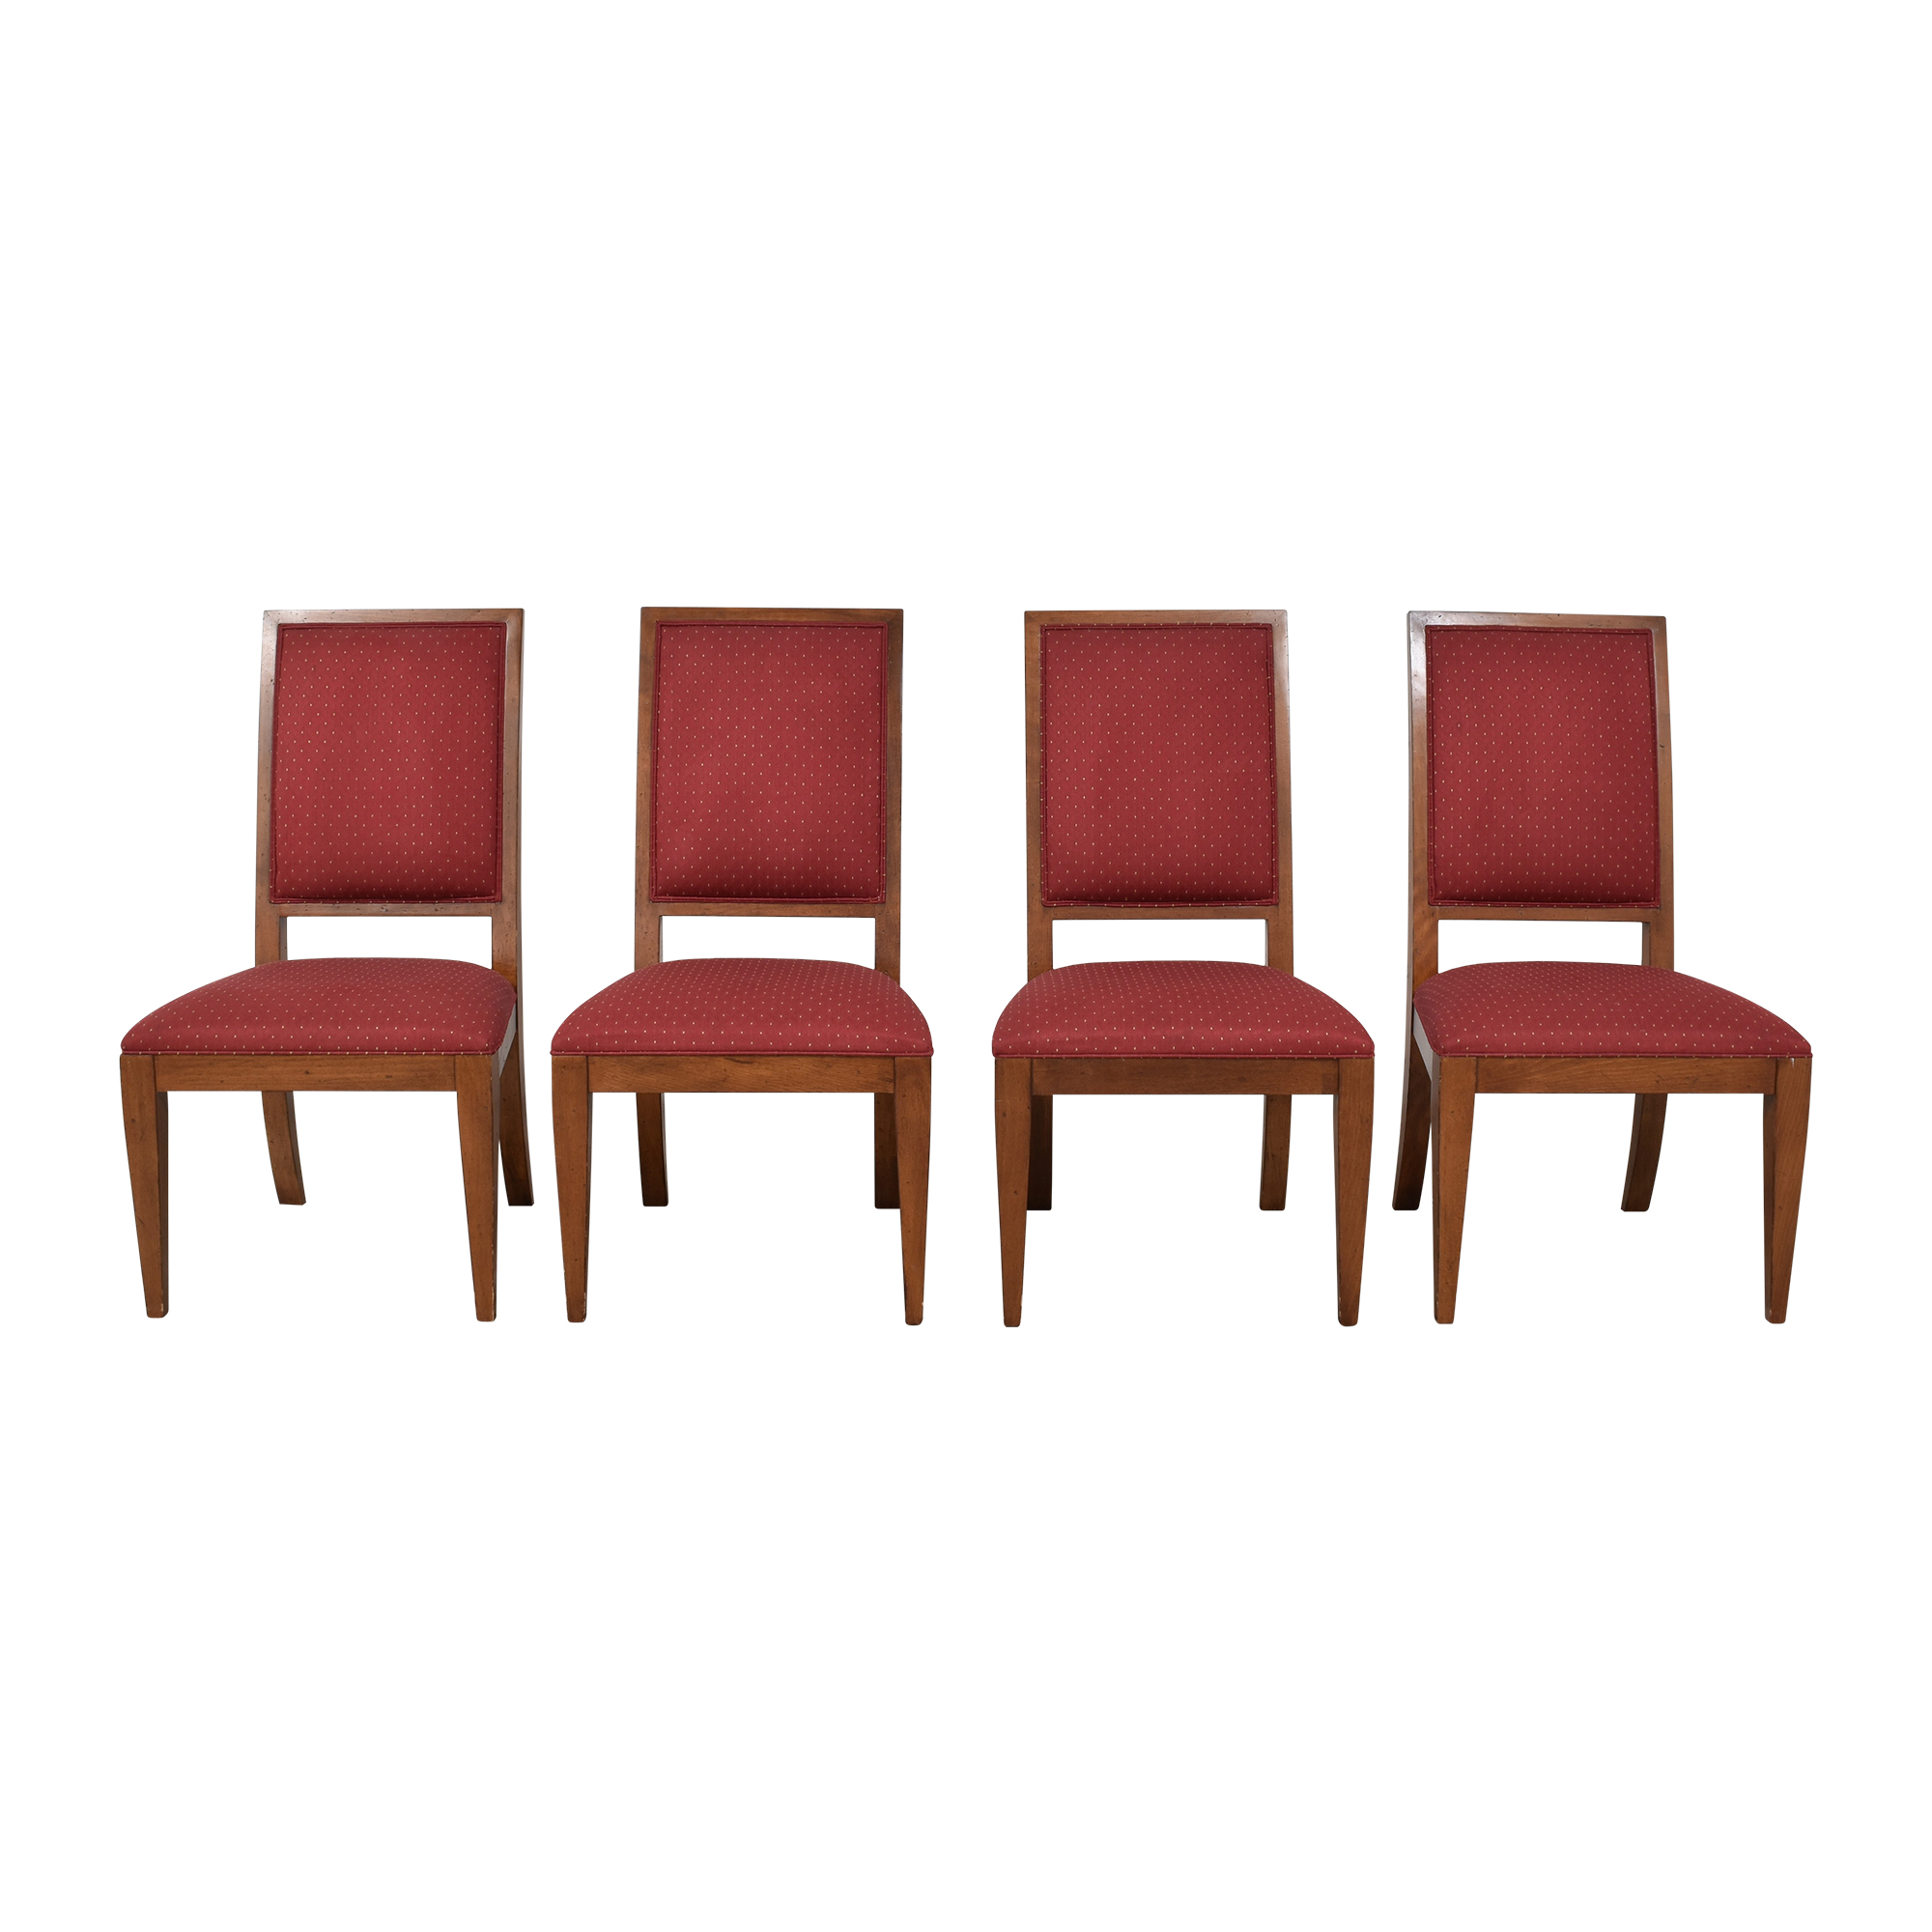 buy Ethan Allen Ethan Allen Upholstered Dining Side Chairs online